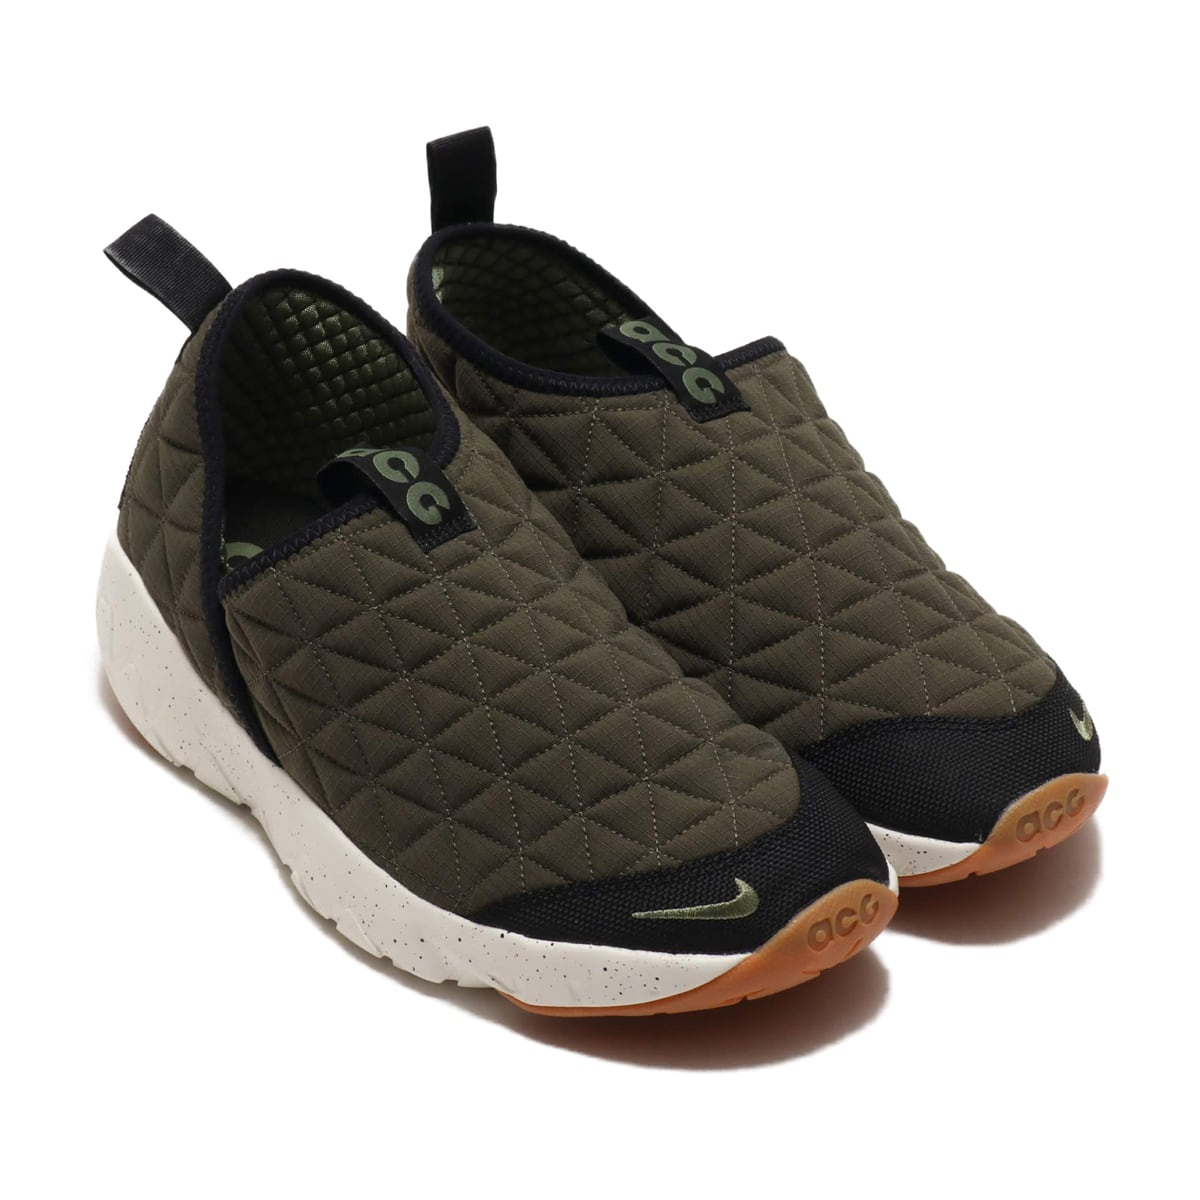 NIKE ACG MOC 3.0 CARGO KHAKI/OIL GREEN-BLACK-SAIL 20SP-S_photo_large